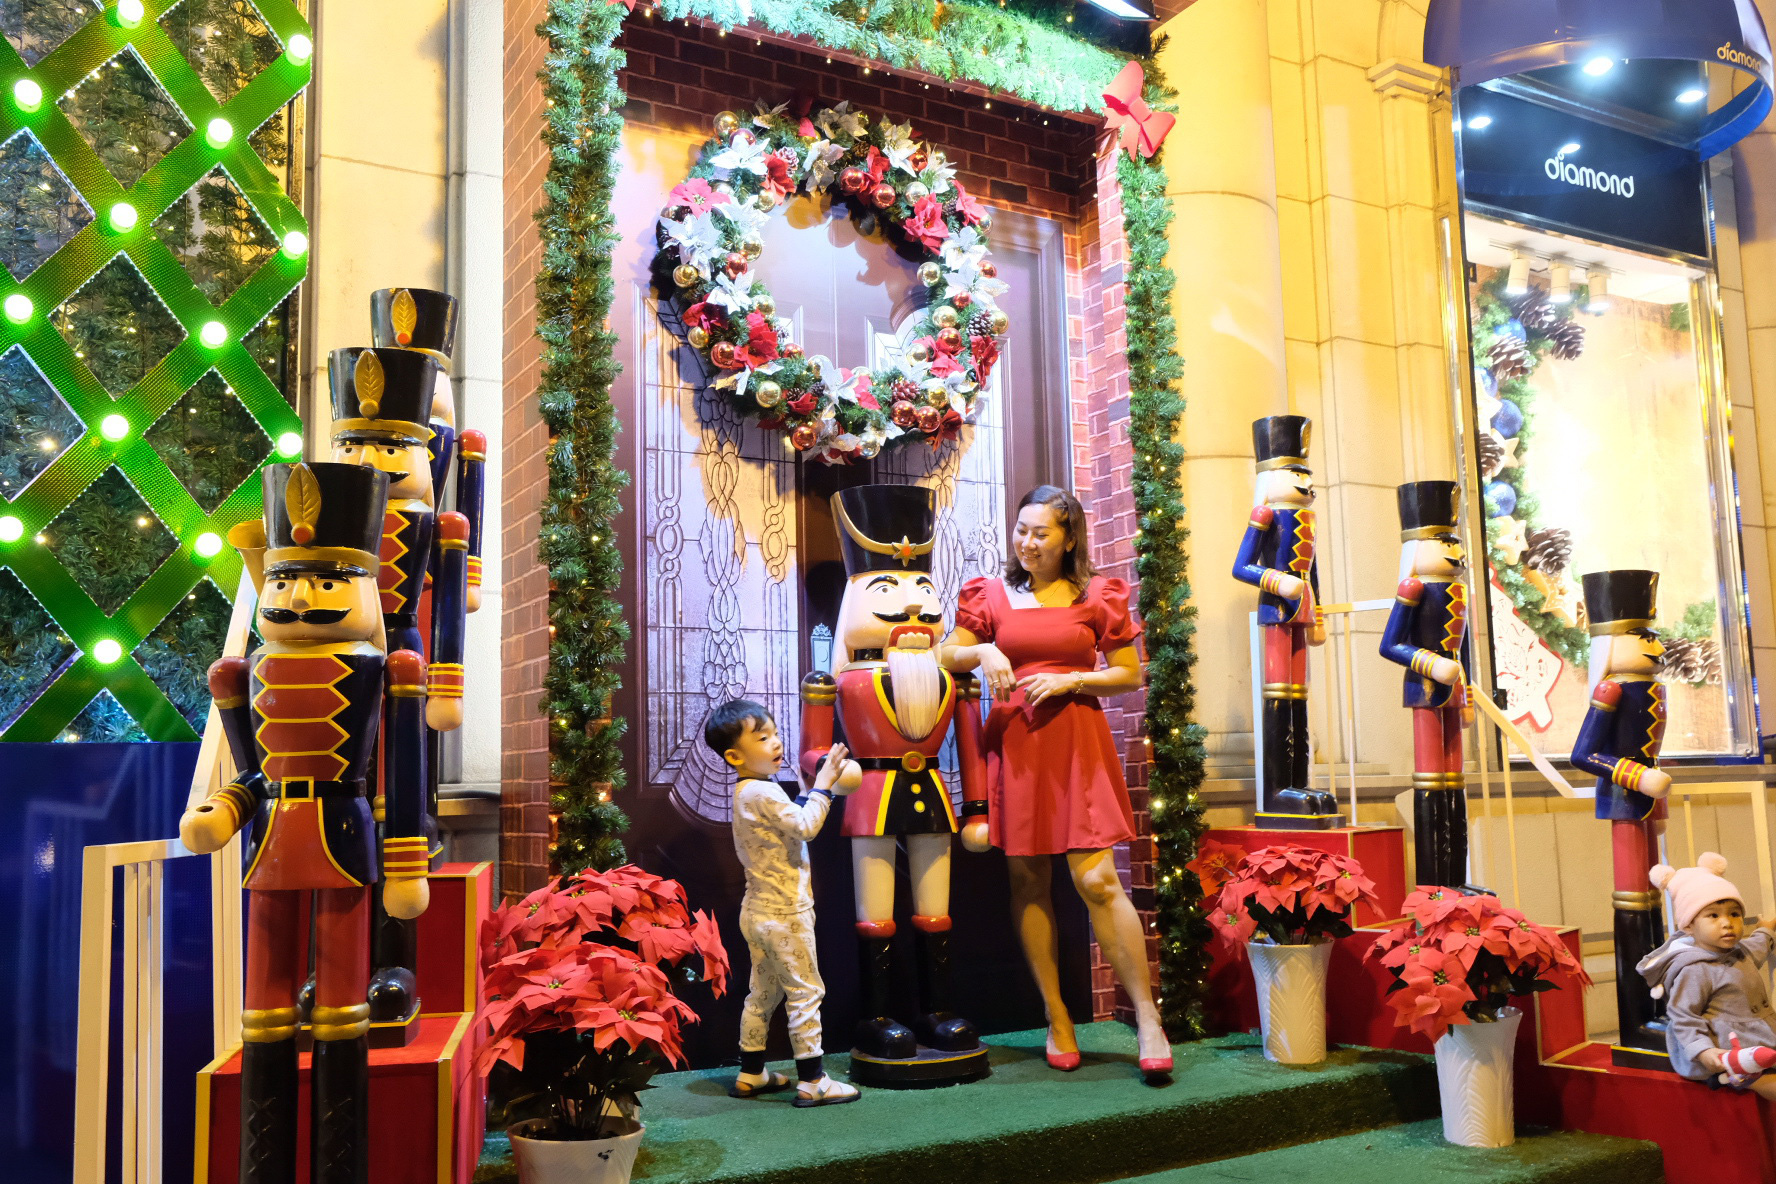 Demand for Christmas decorations rising as holiday spirit spreads in Ho Chi Minh City